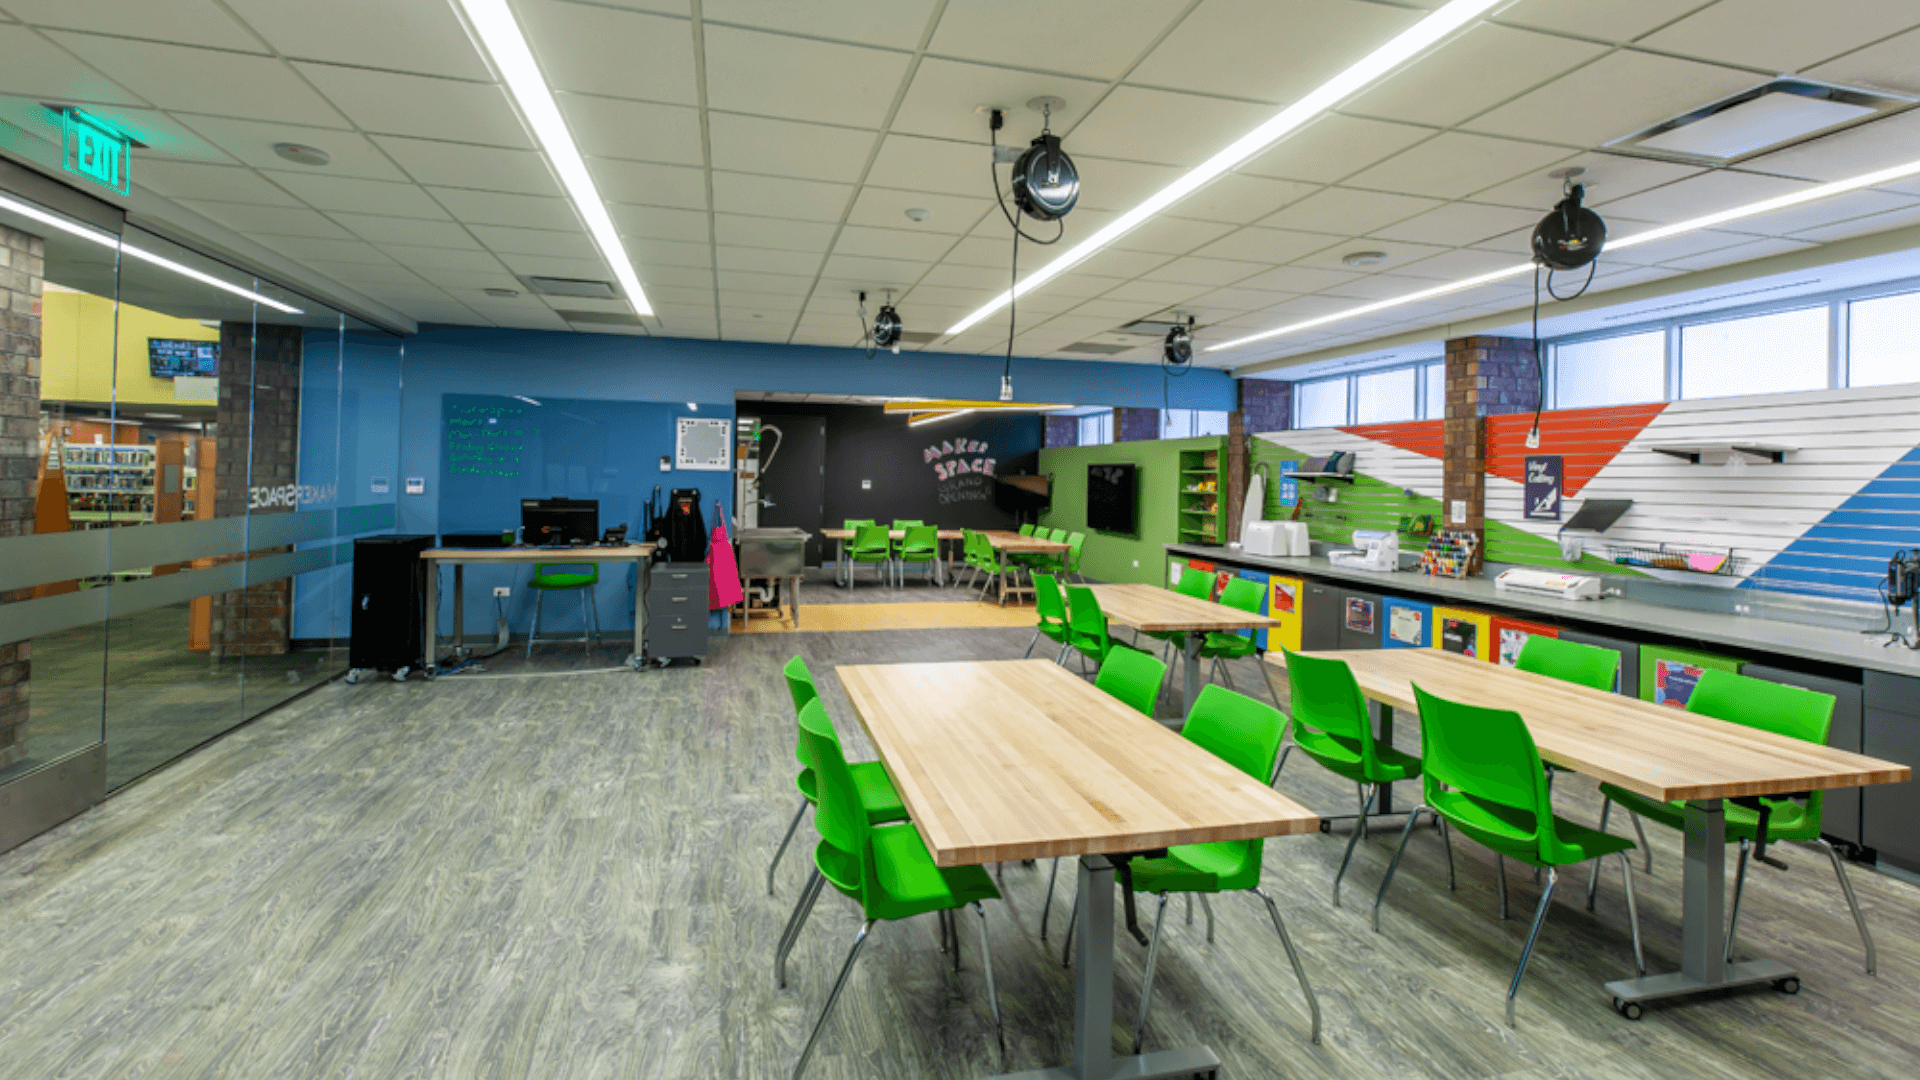 Deerfield Public Library Make Space Renovation Project